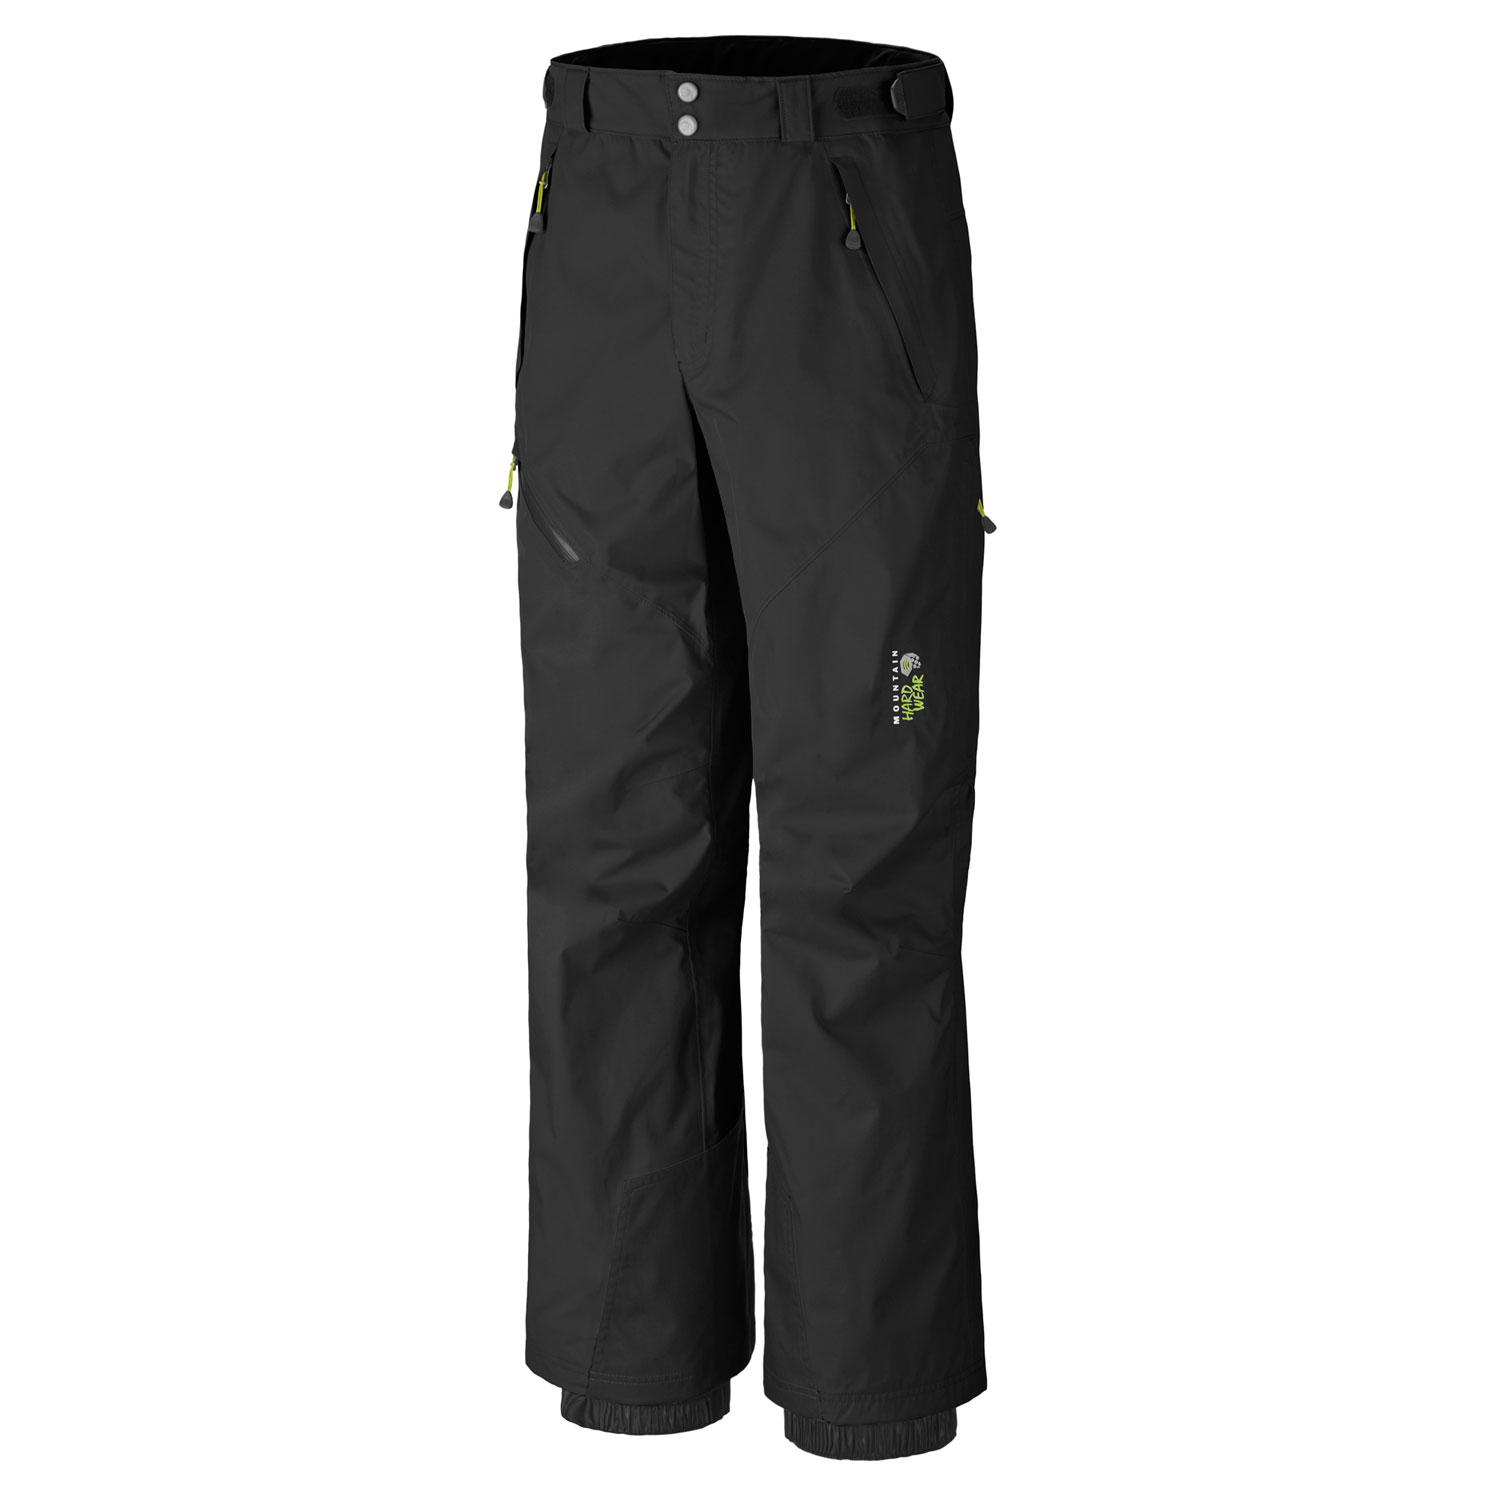 "Ski Key Features of the Mountain Hardwear Returnia Ski Pants: Avg. weight: 1 lb 3 oz; 529g Inseam: 32"" Fabric: Downhill Twill 2L (100% nylon) DryQ Elite: 100% waterproof, most breathable, air-permeable, no-wait comfort Zippered thigh vents for ventilation Fleece-lined handwarmer pockets Internal powder cuffs seal out snow Ambush edge guards at inside lower leg Micro-chamois lined adjustable waist for custom fit - $119.95"